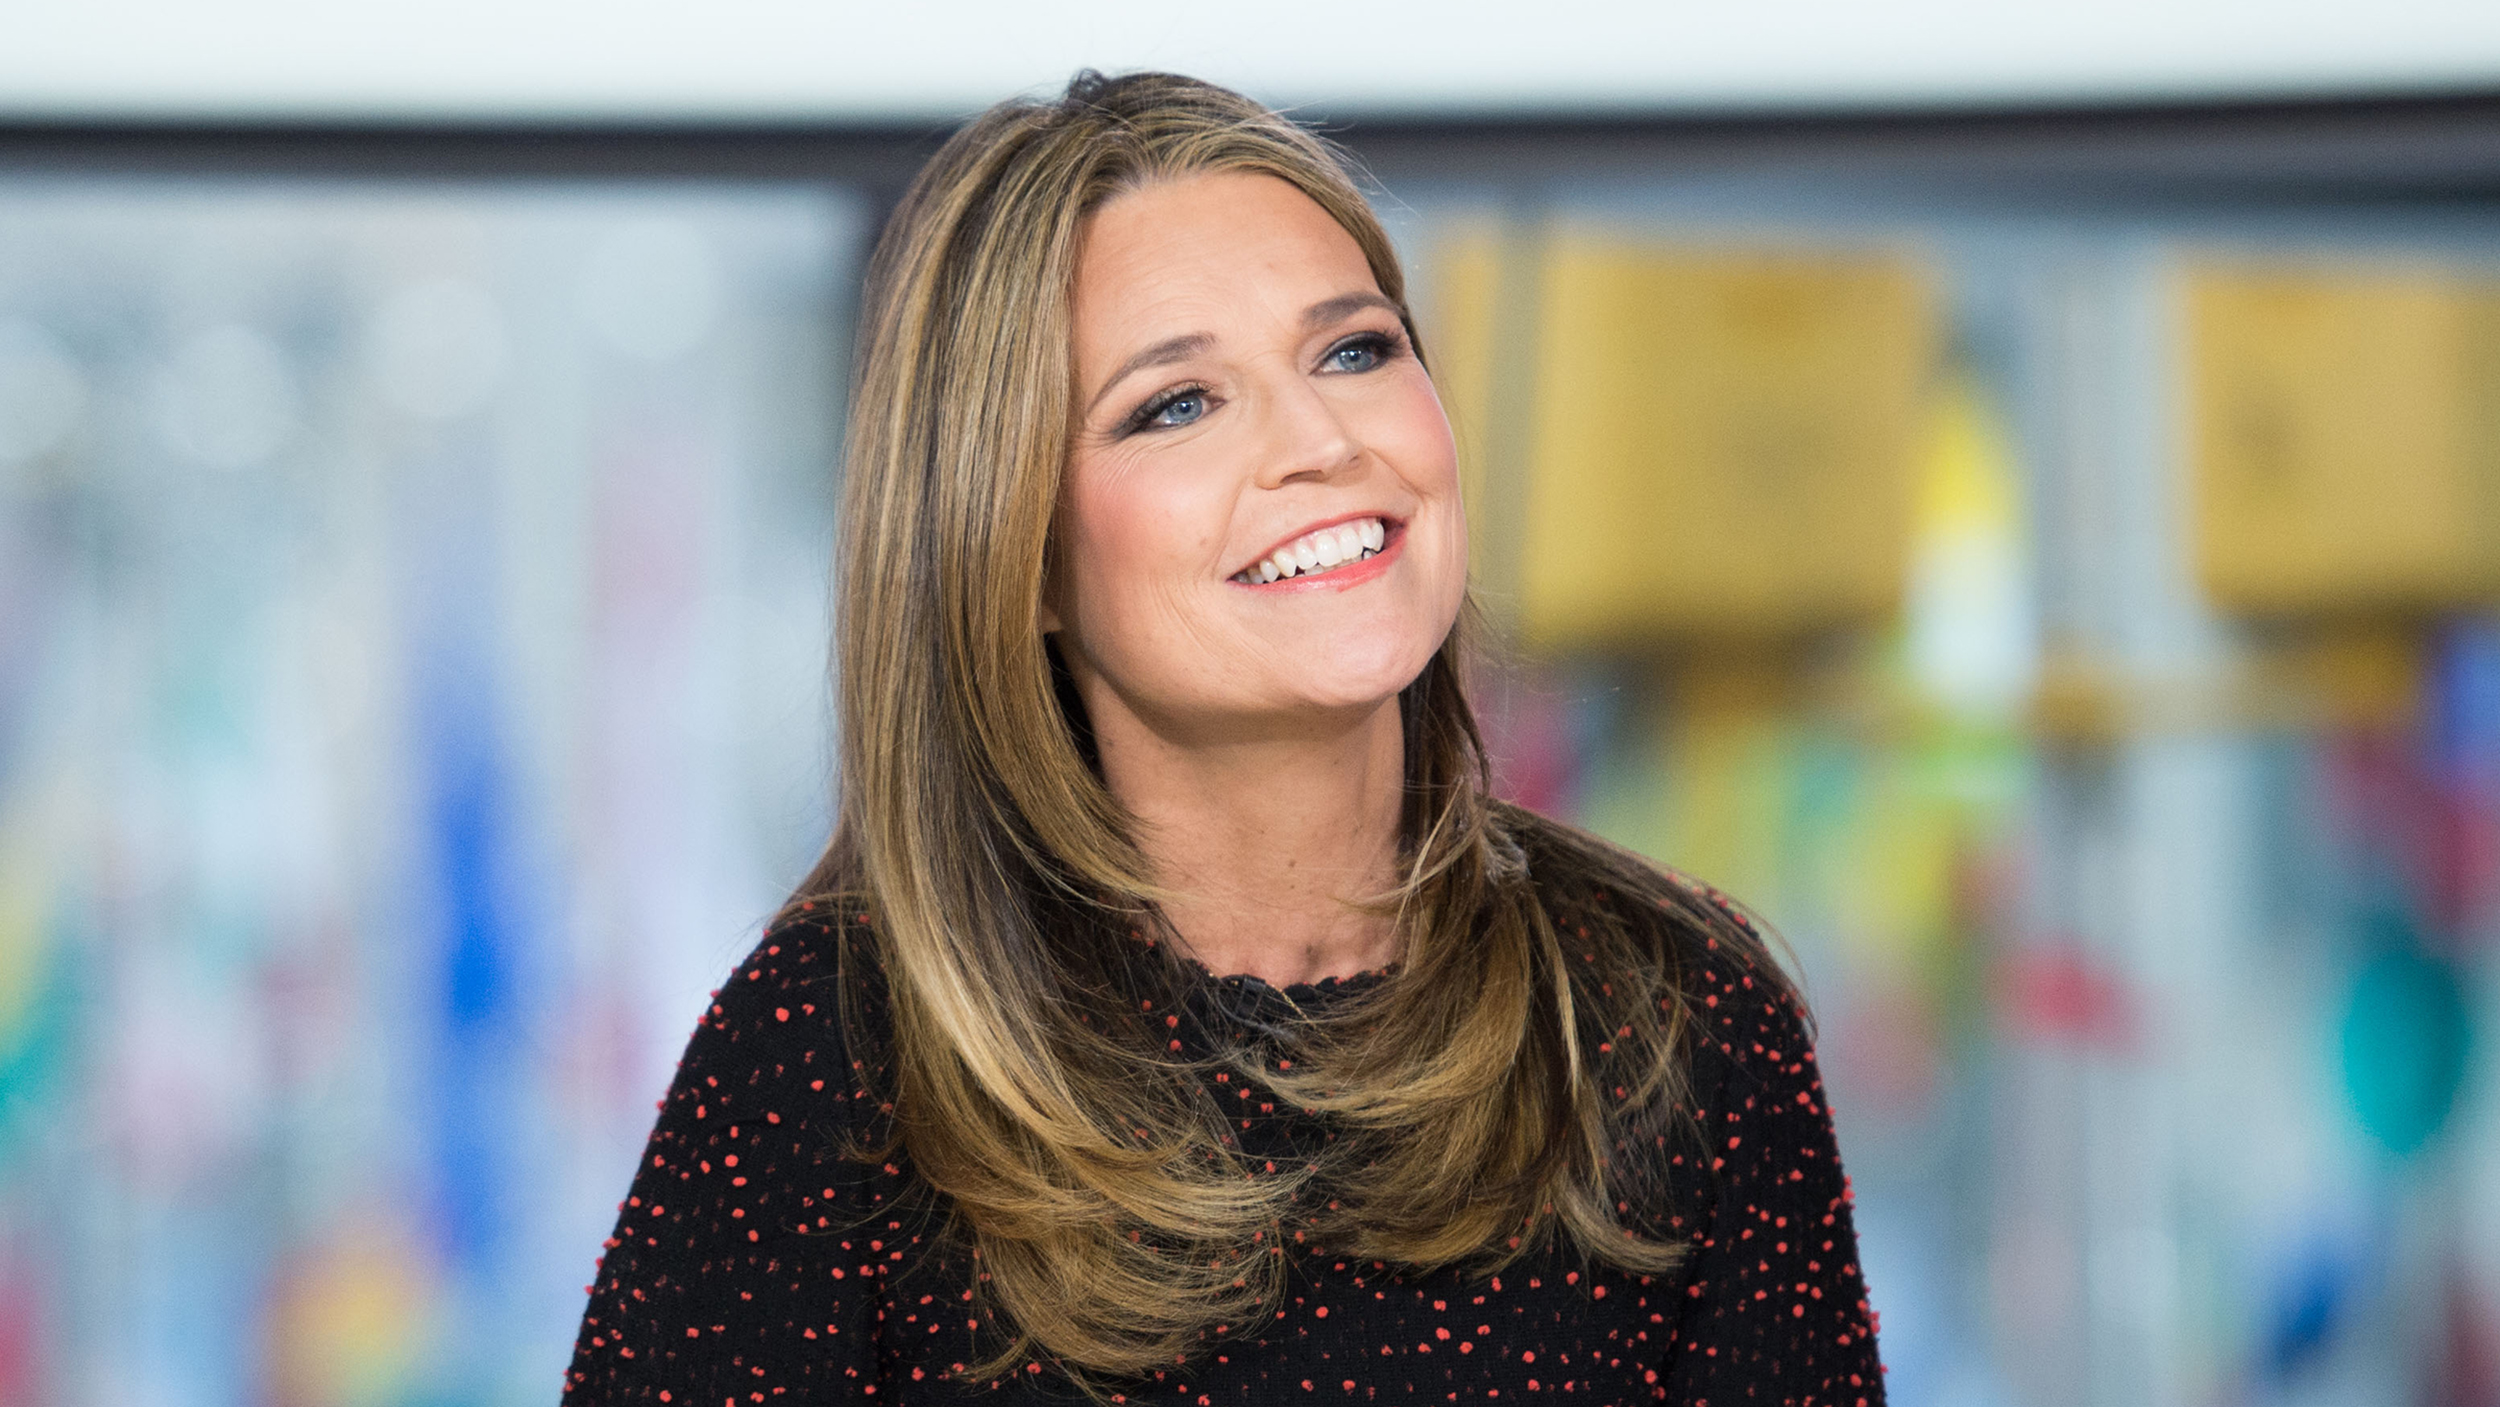 Savannah Guthrie Is Back Today Celebrates Her Return From